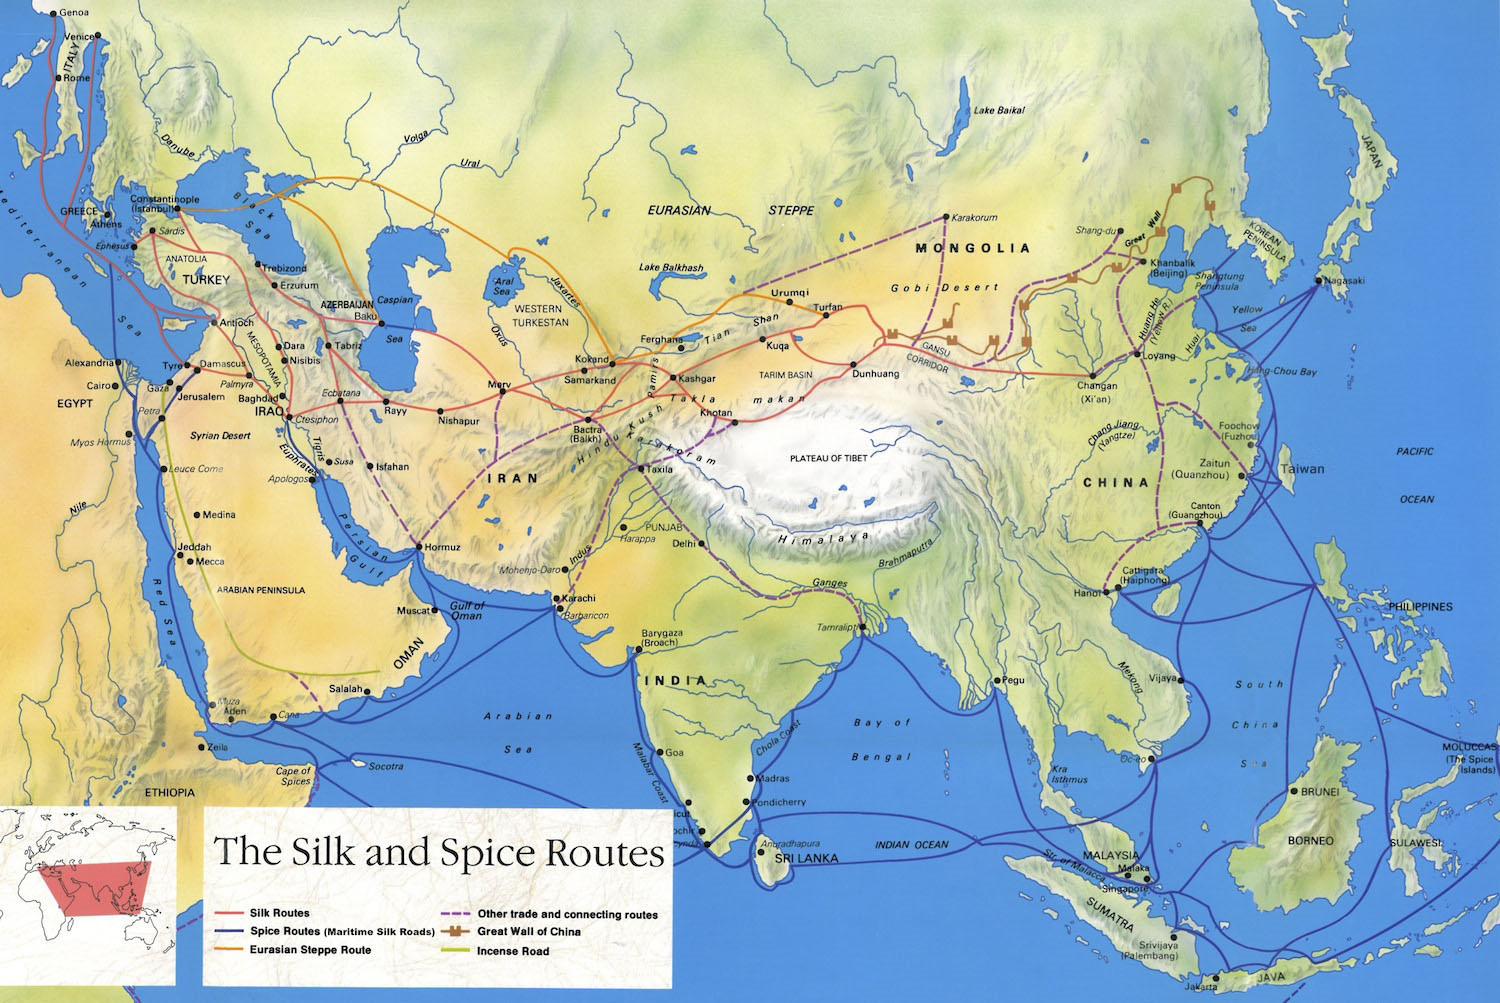 Soft image intended for silk road map printable